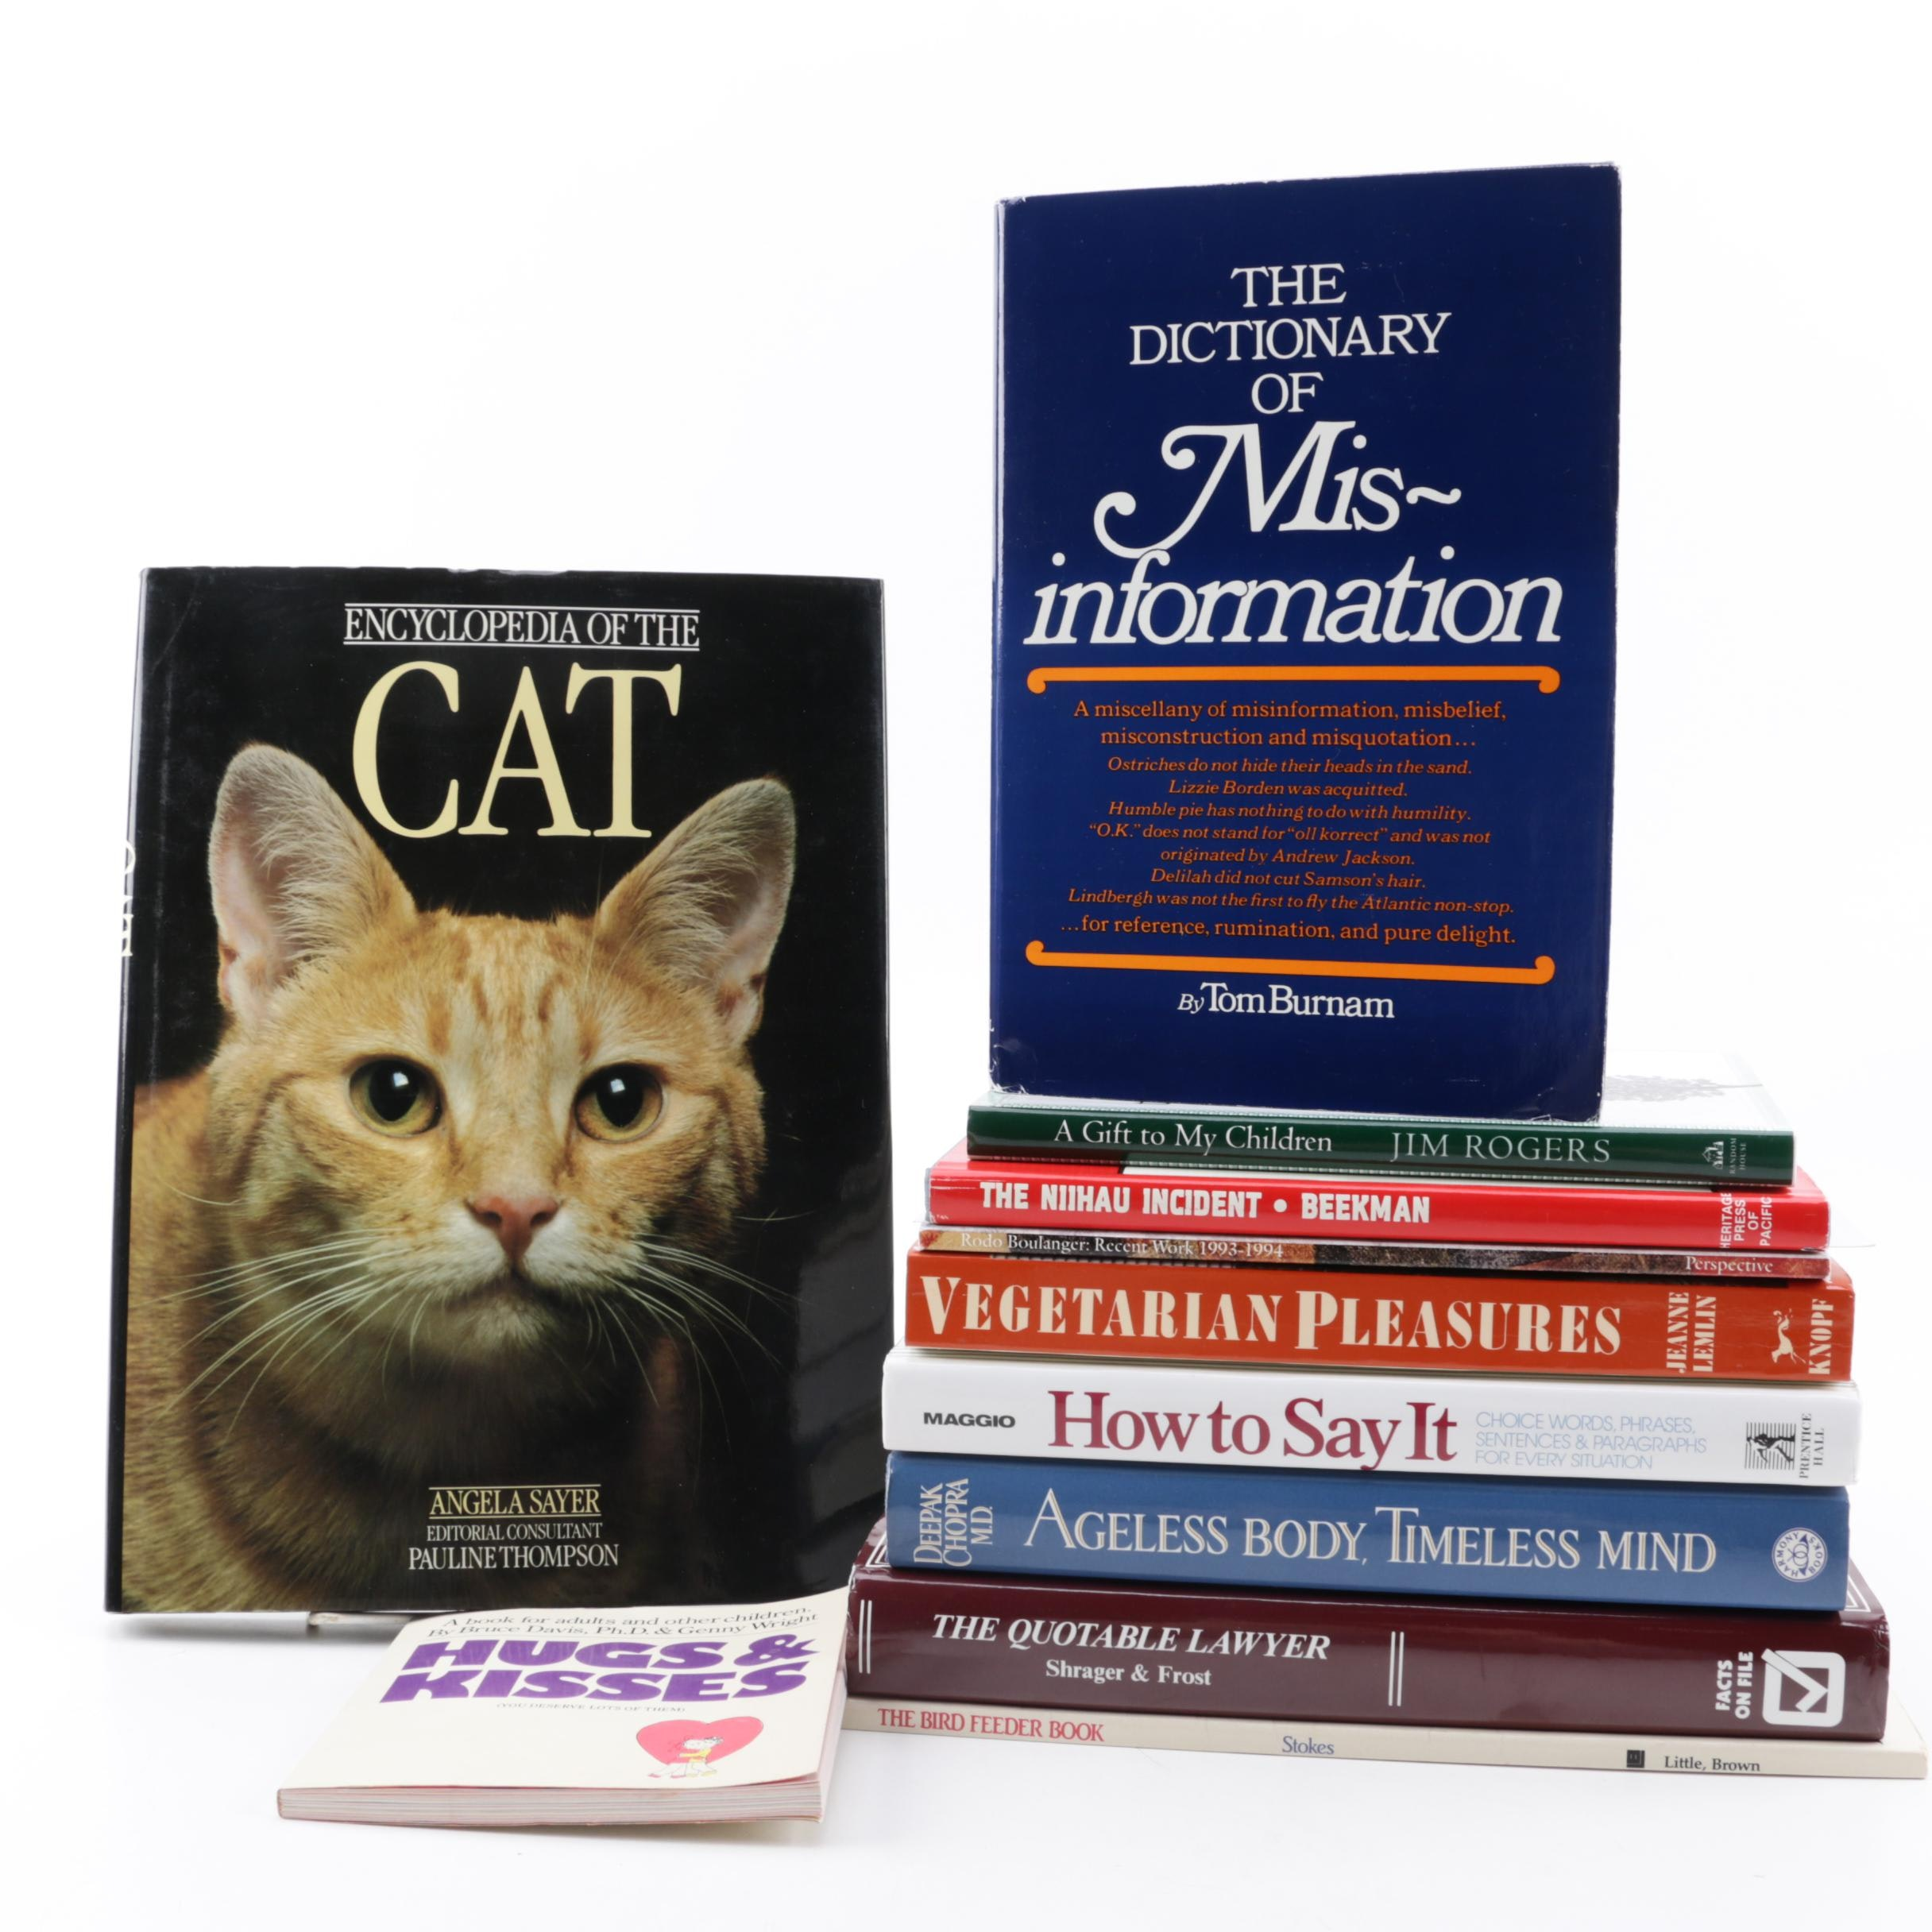 """Nonfiction Reference and Novelty Books including """"Encyclopedia of the Cat"""""""